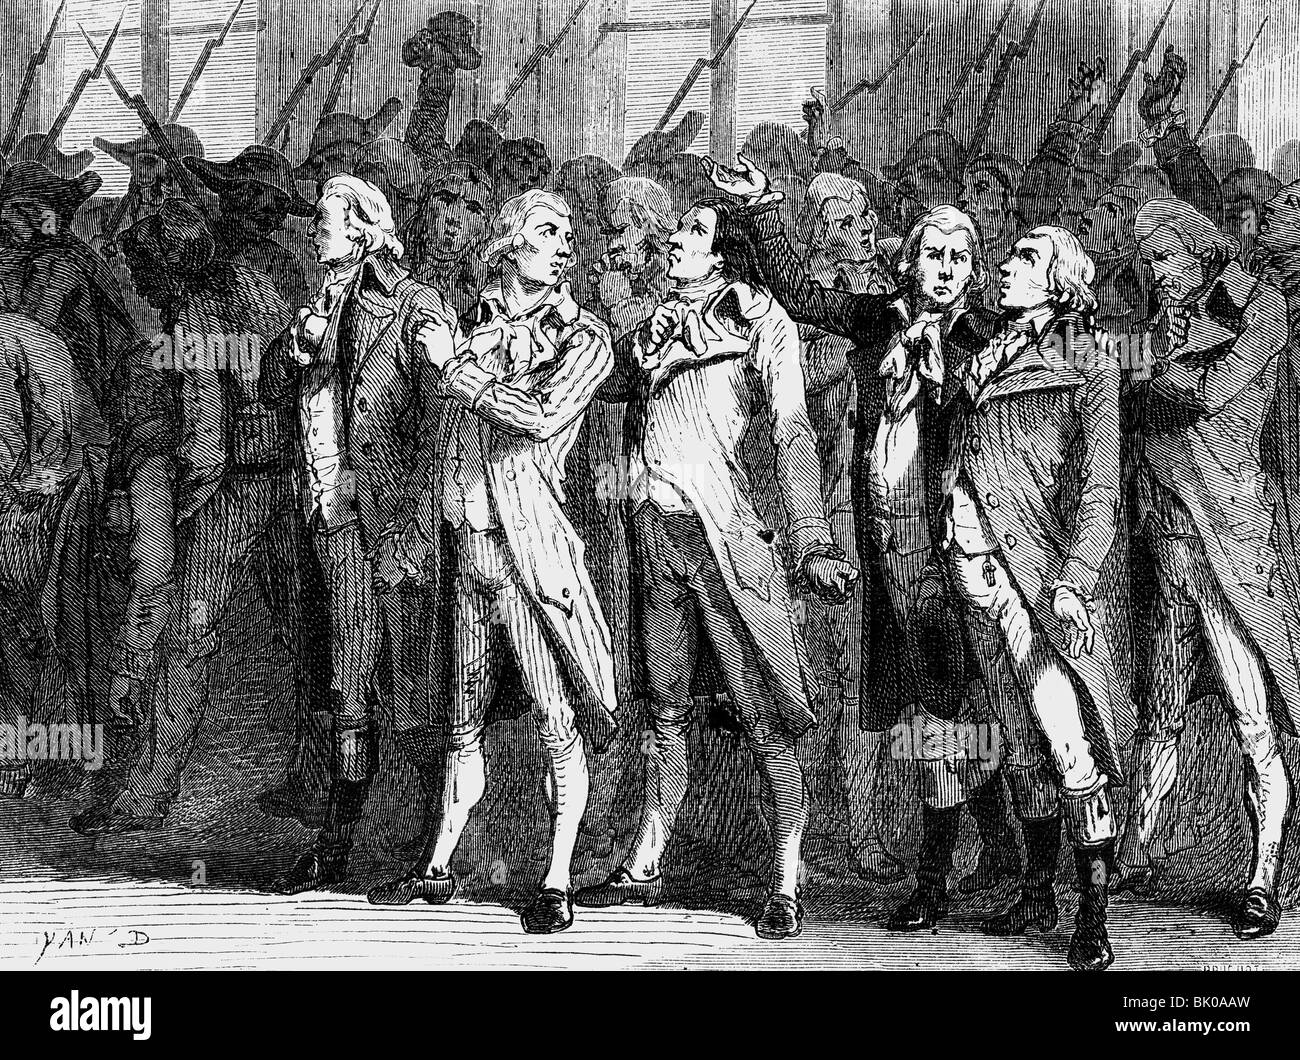 a history of the french revolution of 1789 1799 History of the french revolution from 1789-1814 /  x history |y revolution, 1789-1799 651: 0  a concise history of the french revolution / by:.